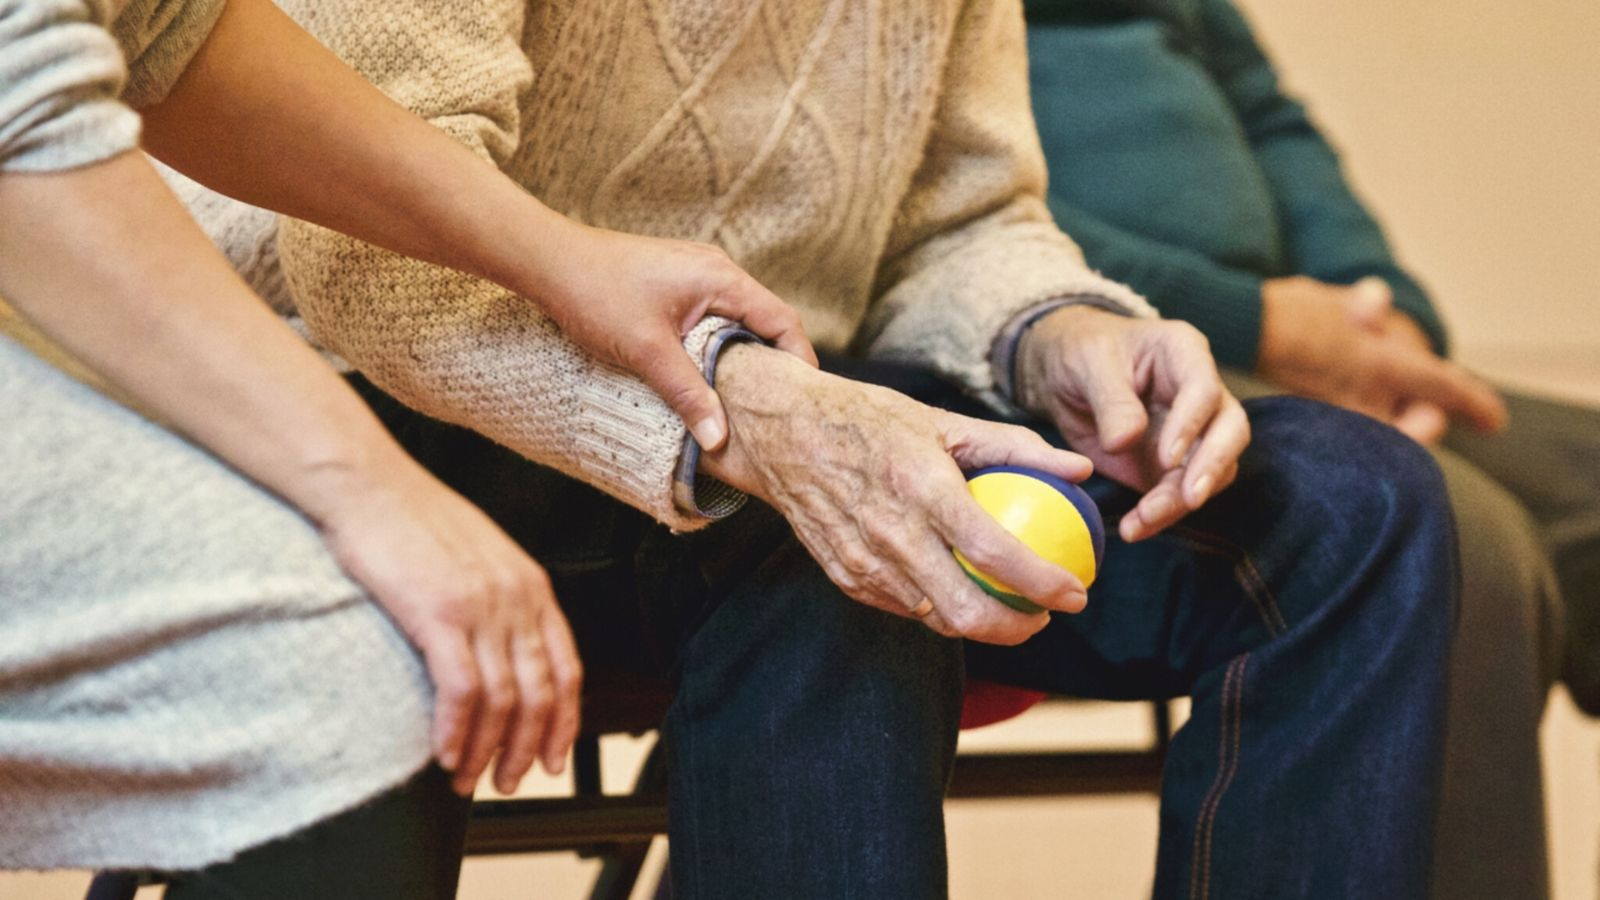 how-can-seniors-stay-safe-healthy-during-lockdown